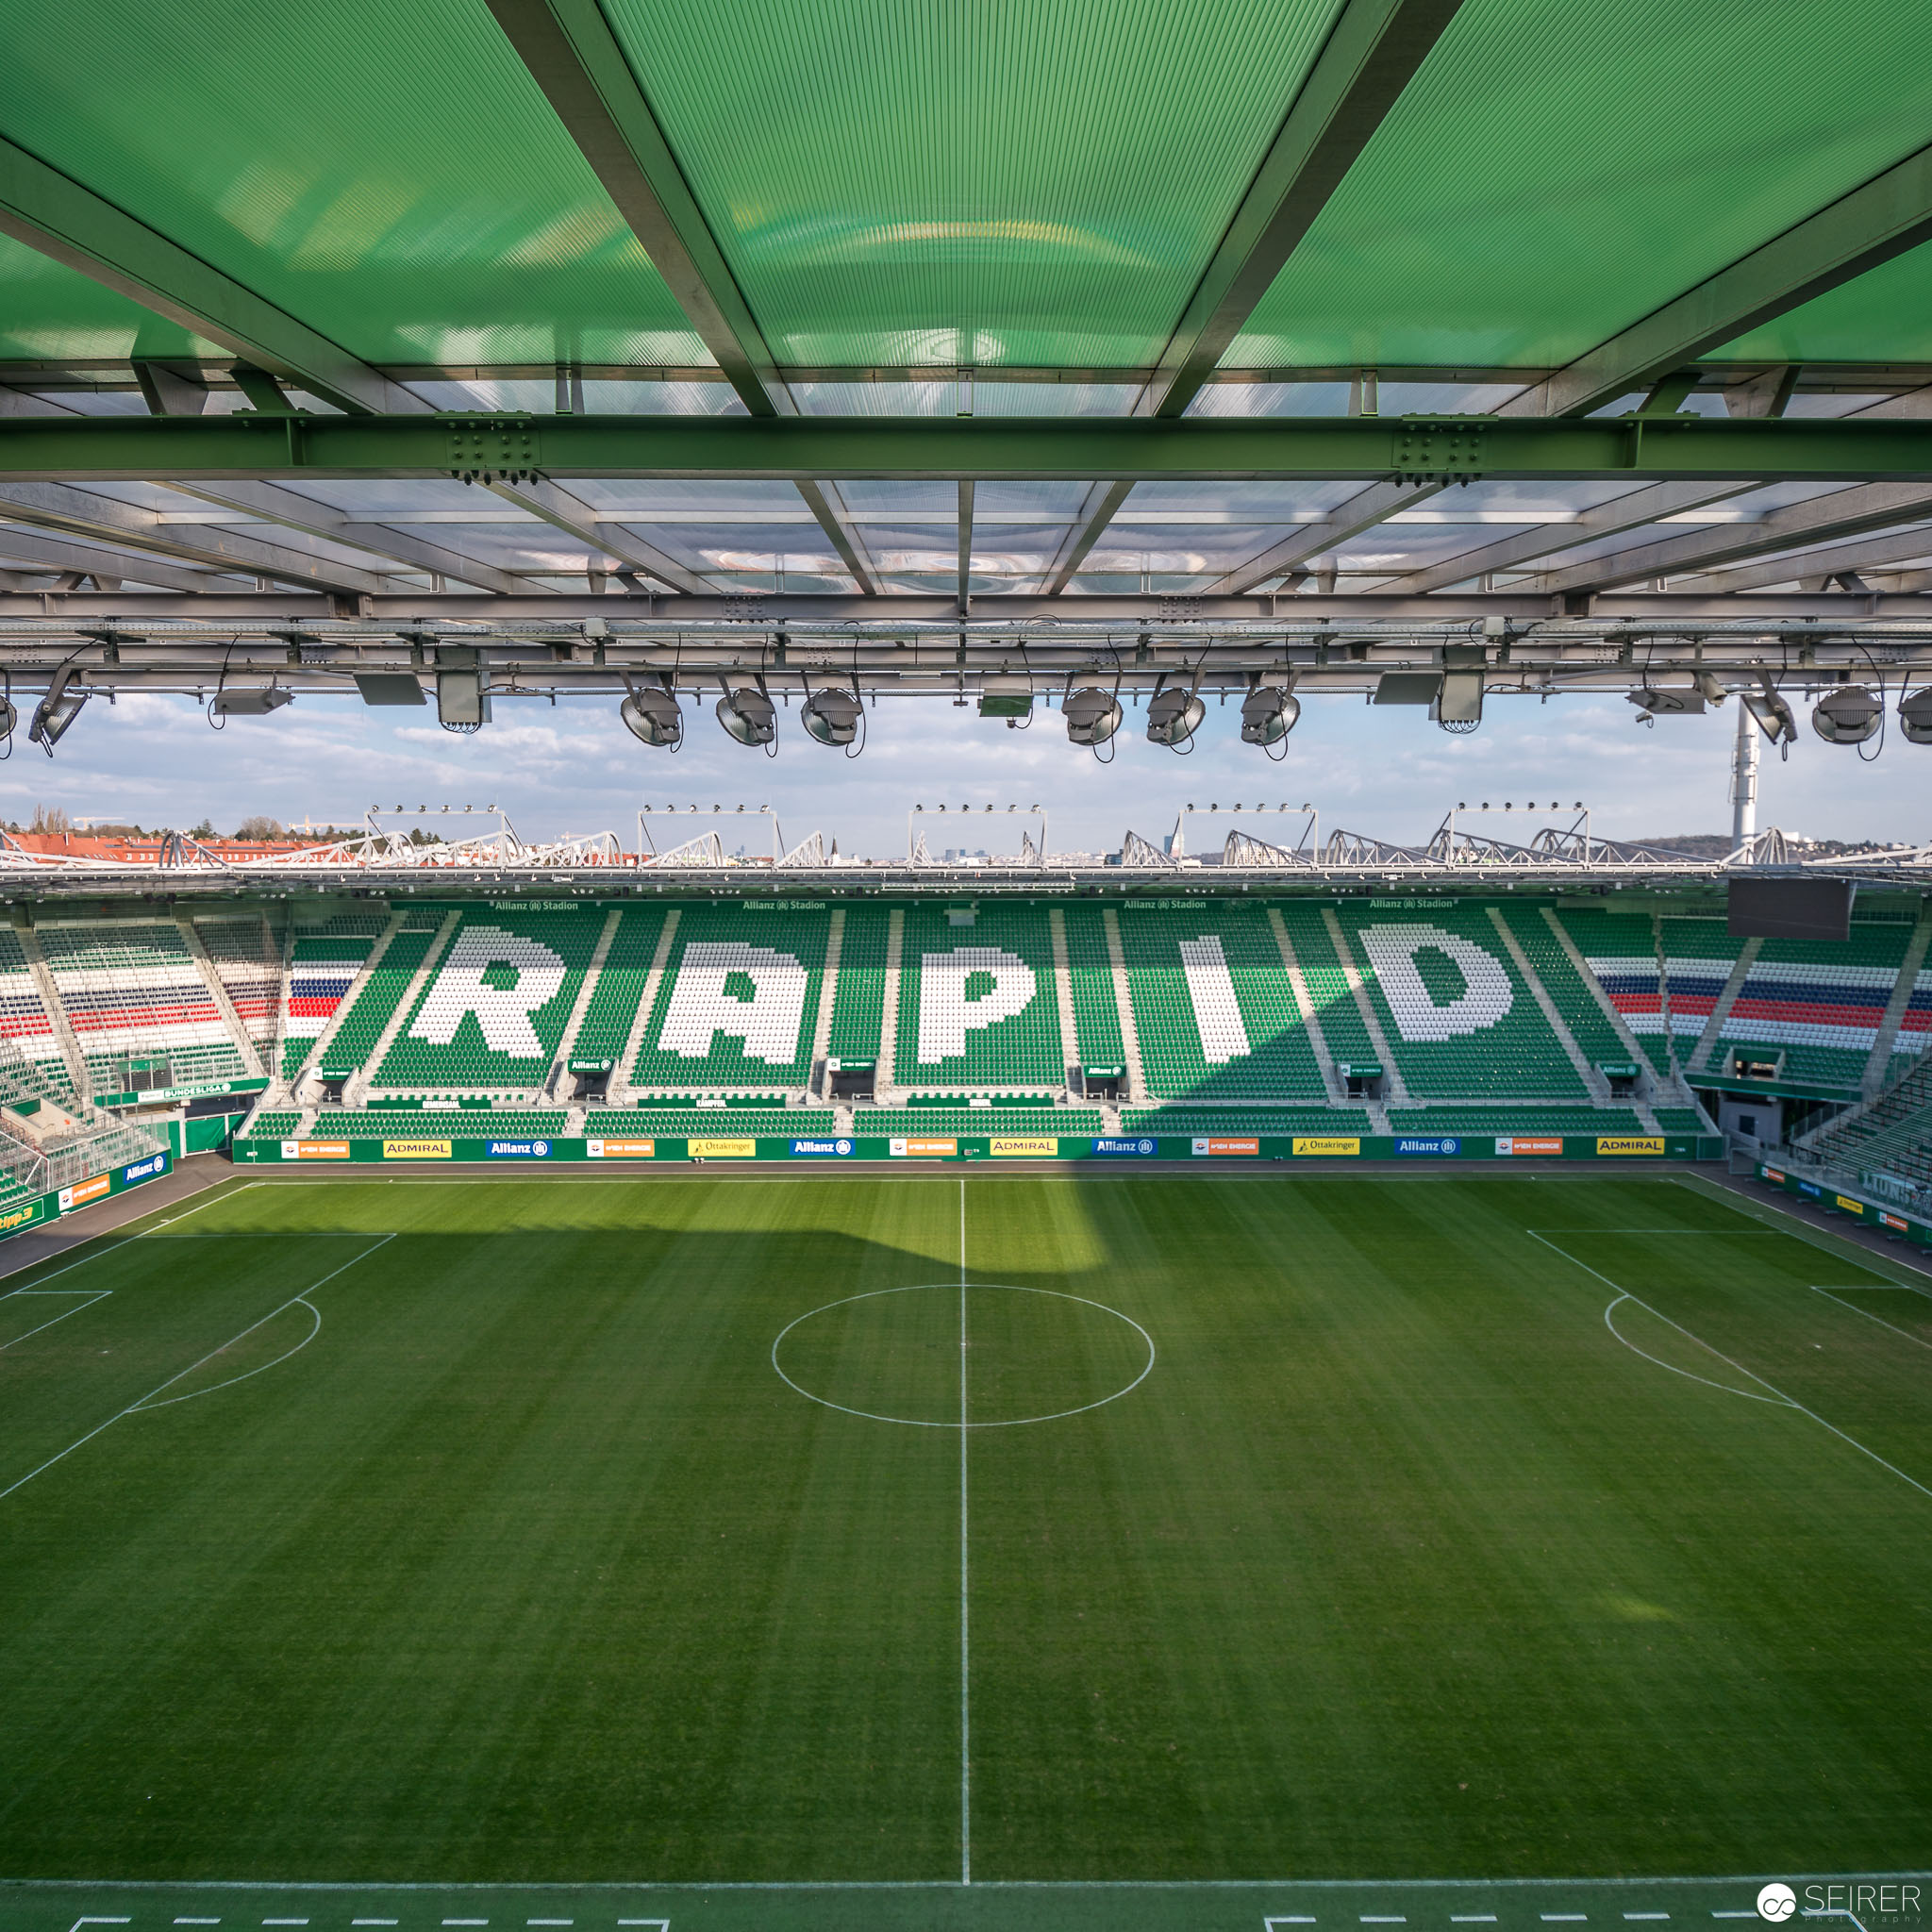 20170311_160138_rapid_allianzstadion_6888.jpg